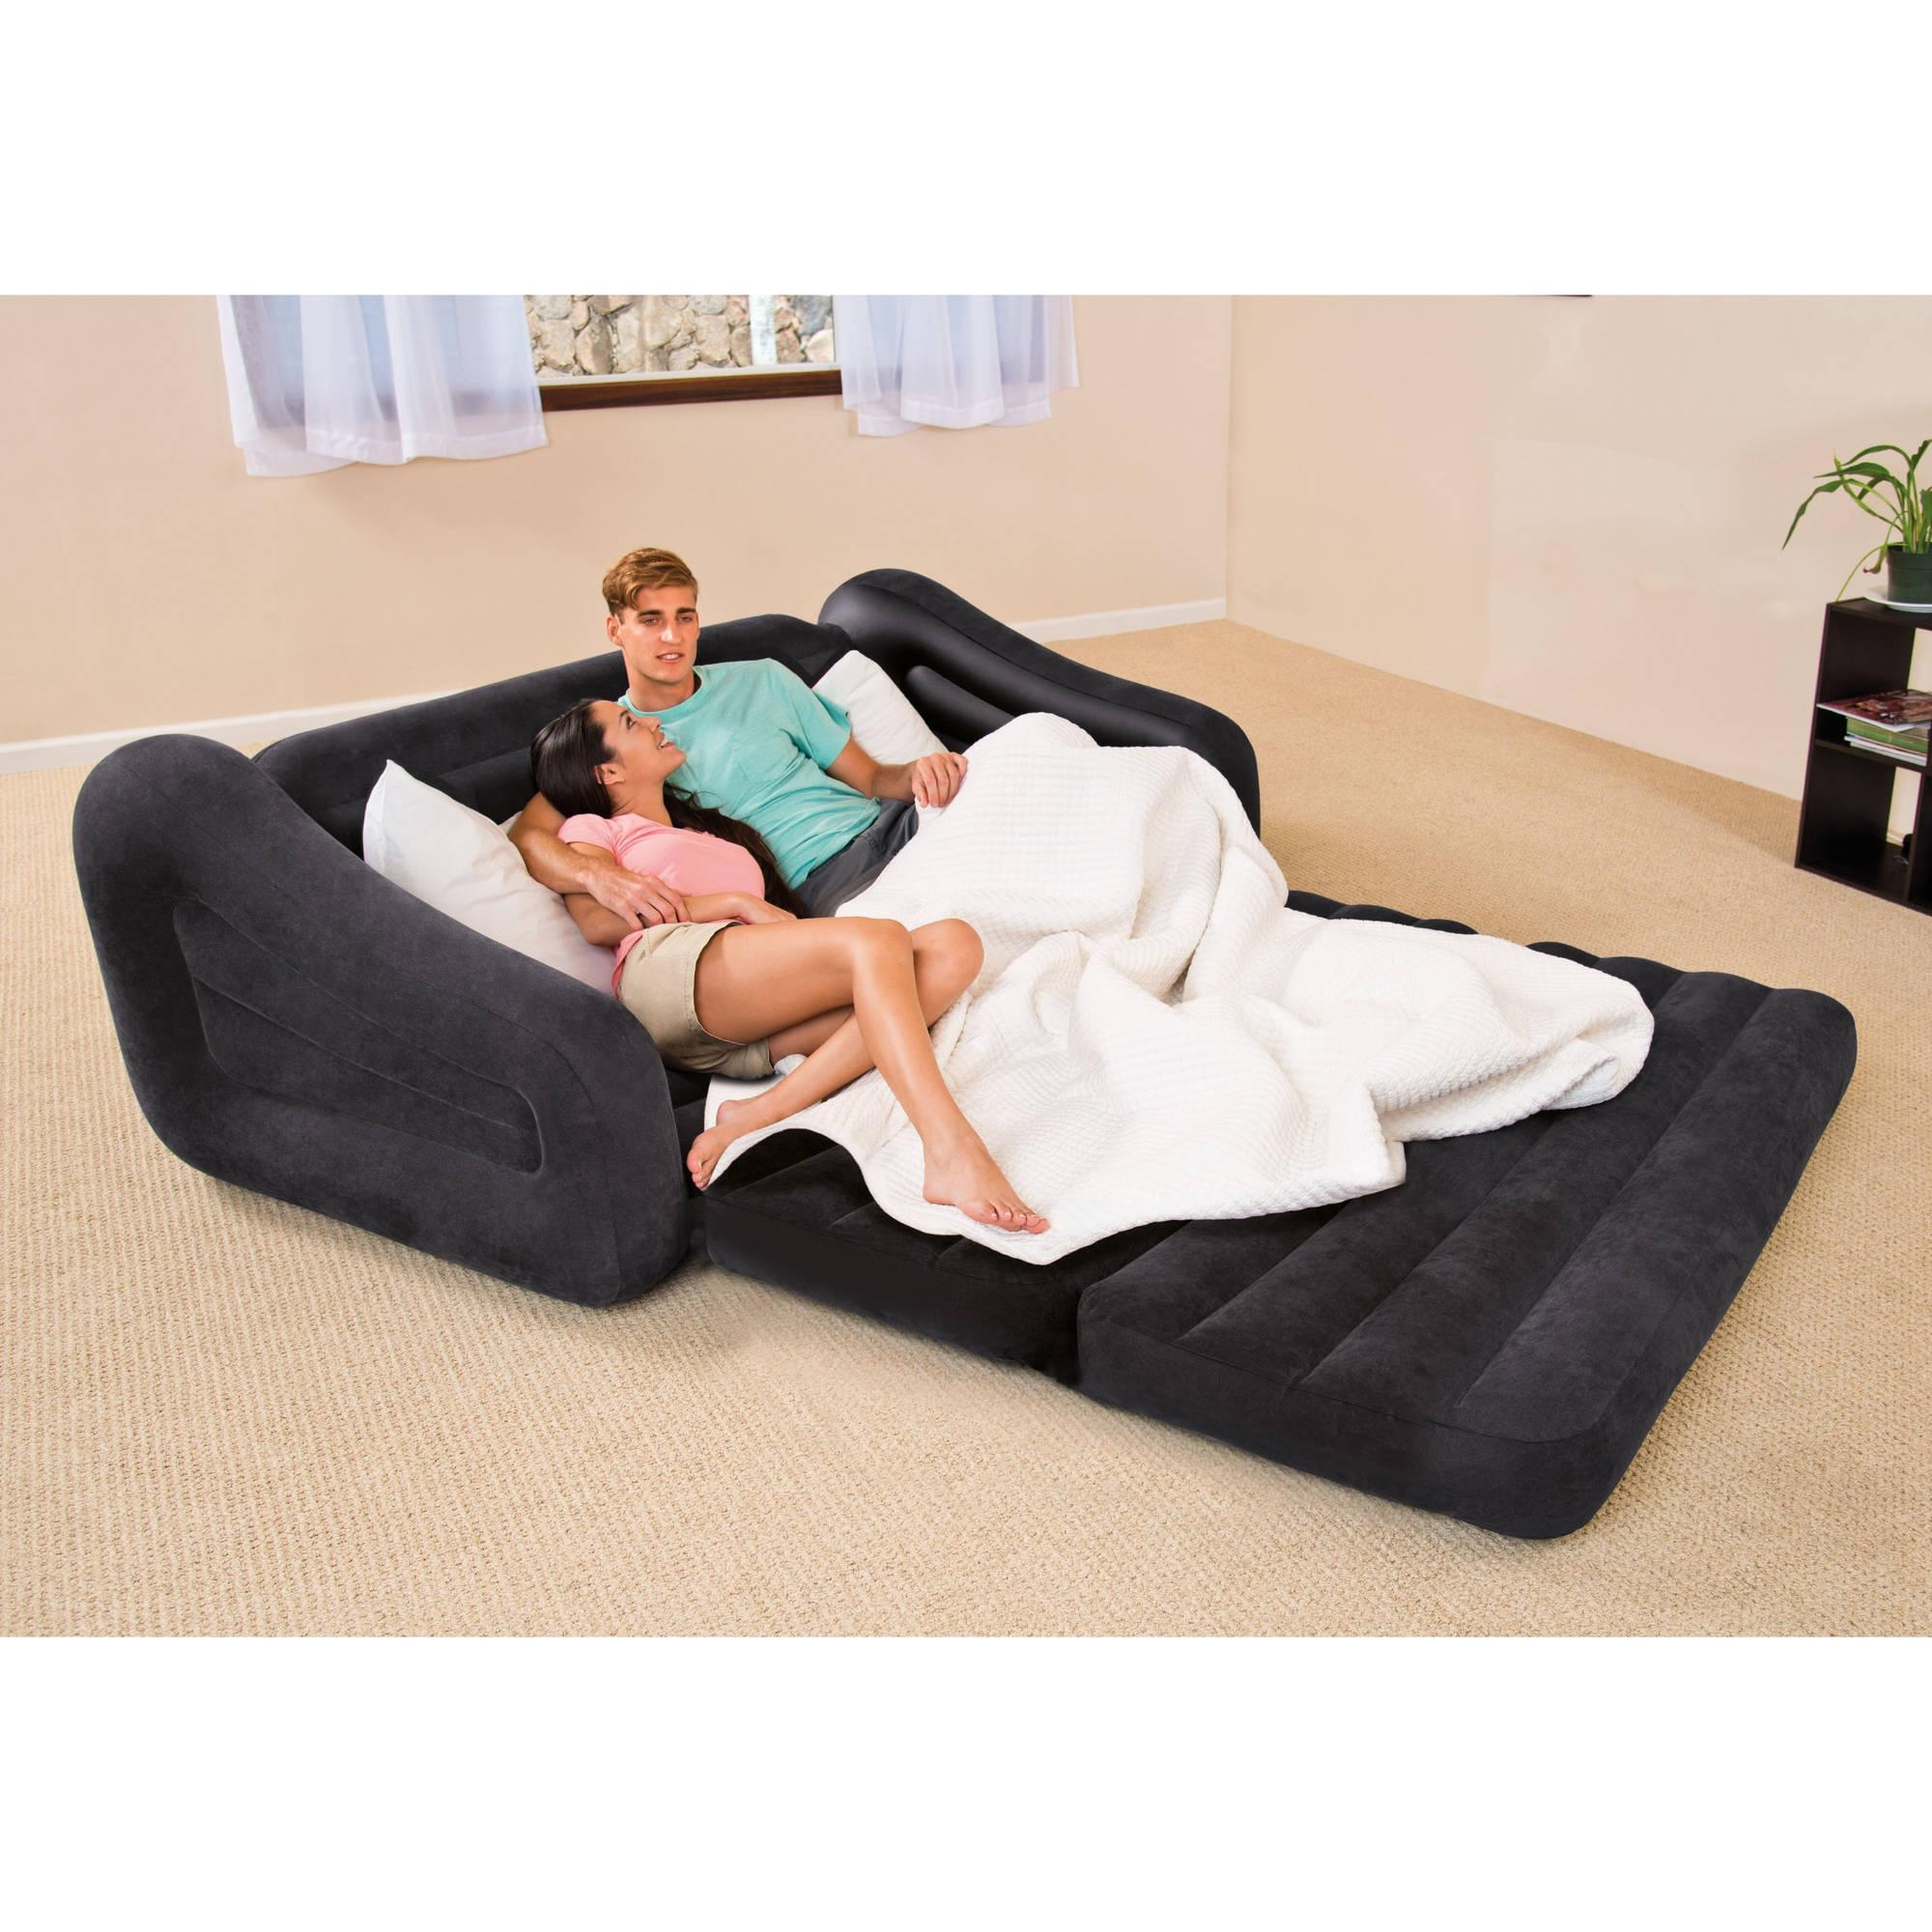 Intex Queen Inflatable Pull Out Sofa Bed – Walmart Intended For Pull Out Sofa Chairs (View 2 of 20)